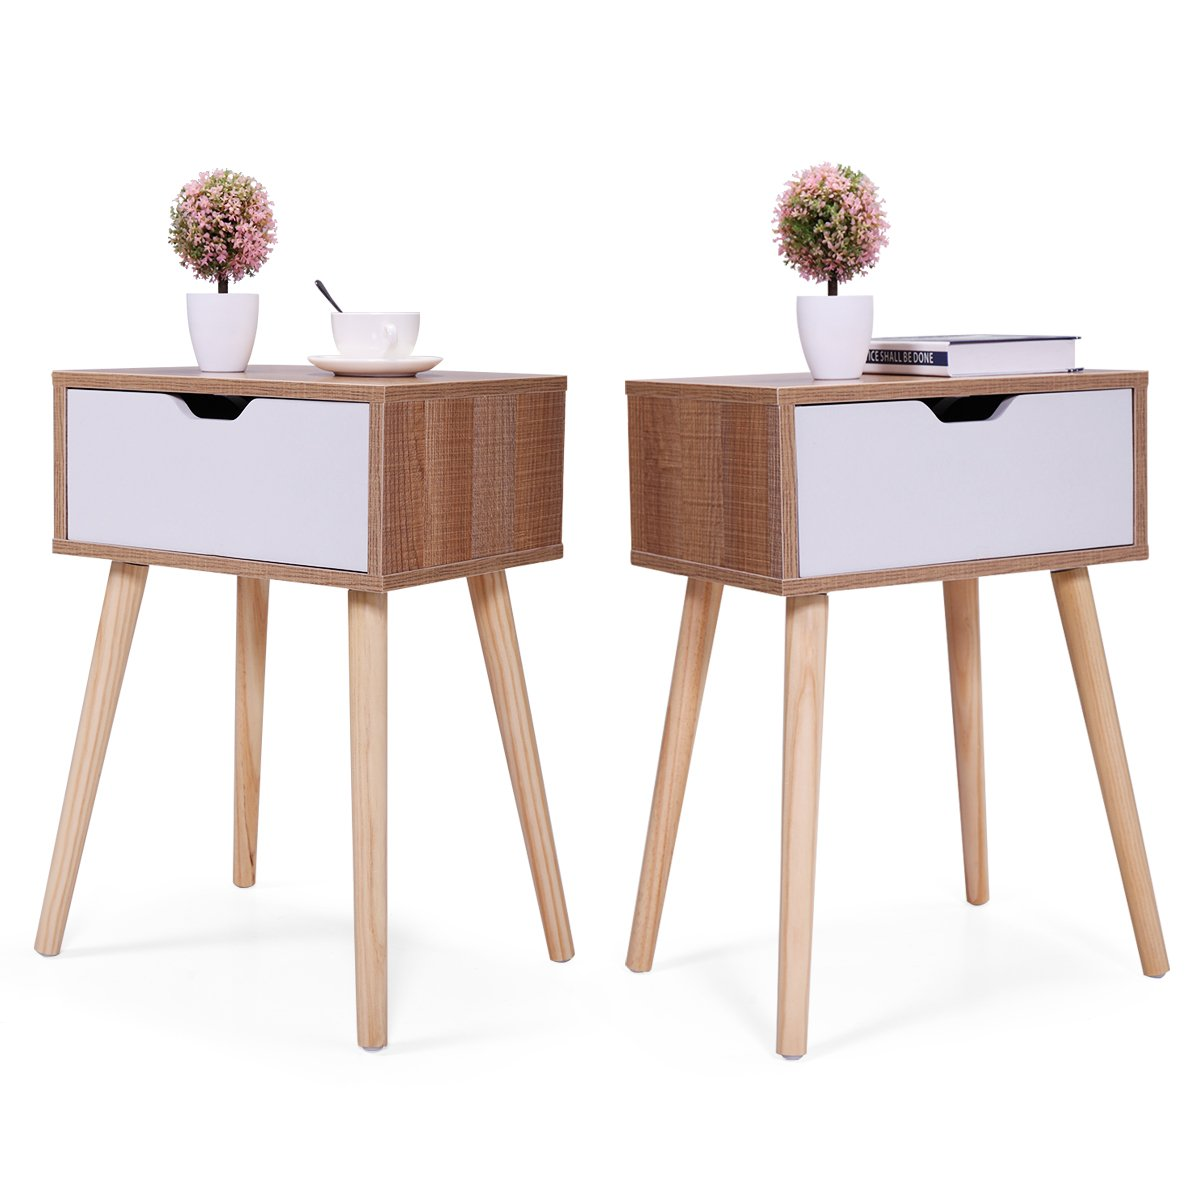 JAXPETY Set of 2 Bedside Table Solid Wood Legs Nightstand with White Storage Drawer (Brown)